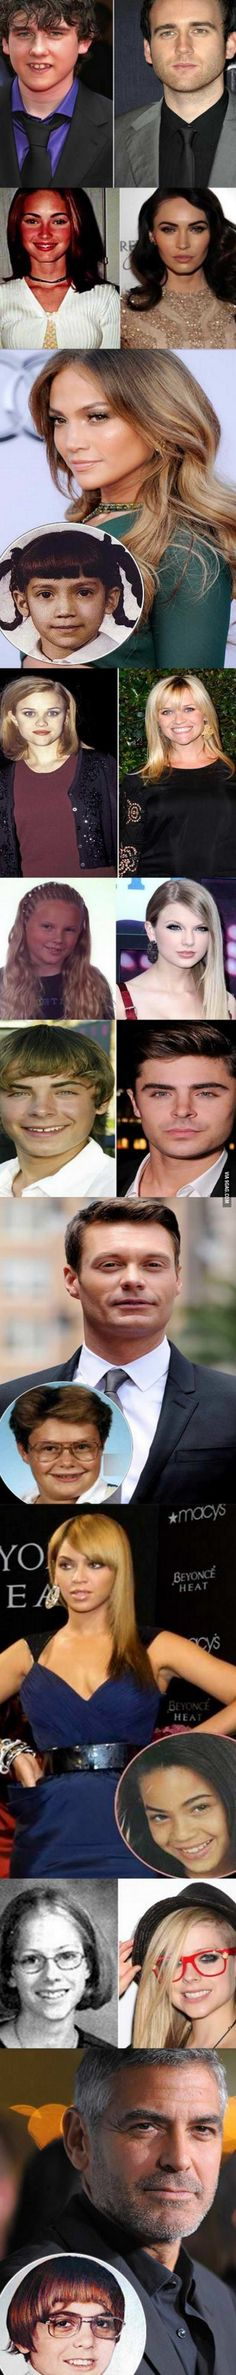 Pictures of Celebrities then and now 2014 - http://www.jokideo.com/